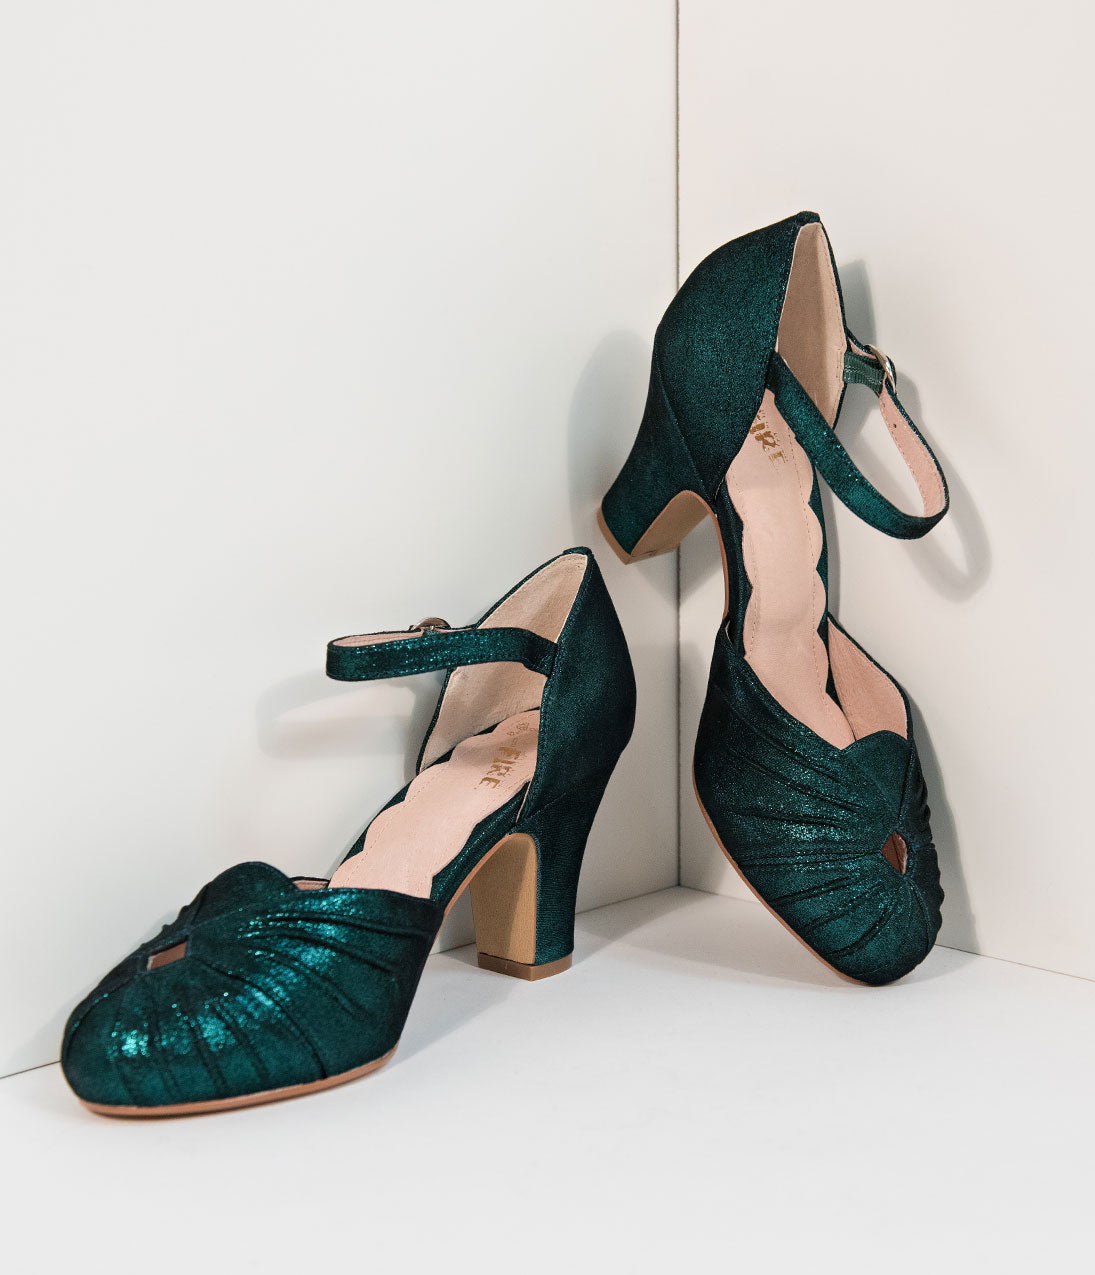 1940s Style Shoes, 40s Shoes Miss L Fire 1940S Style Emerald Green Sparkle Keyhole Amber Heels $131.00 AT vintagedancer.com